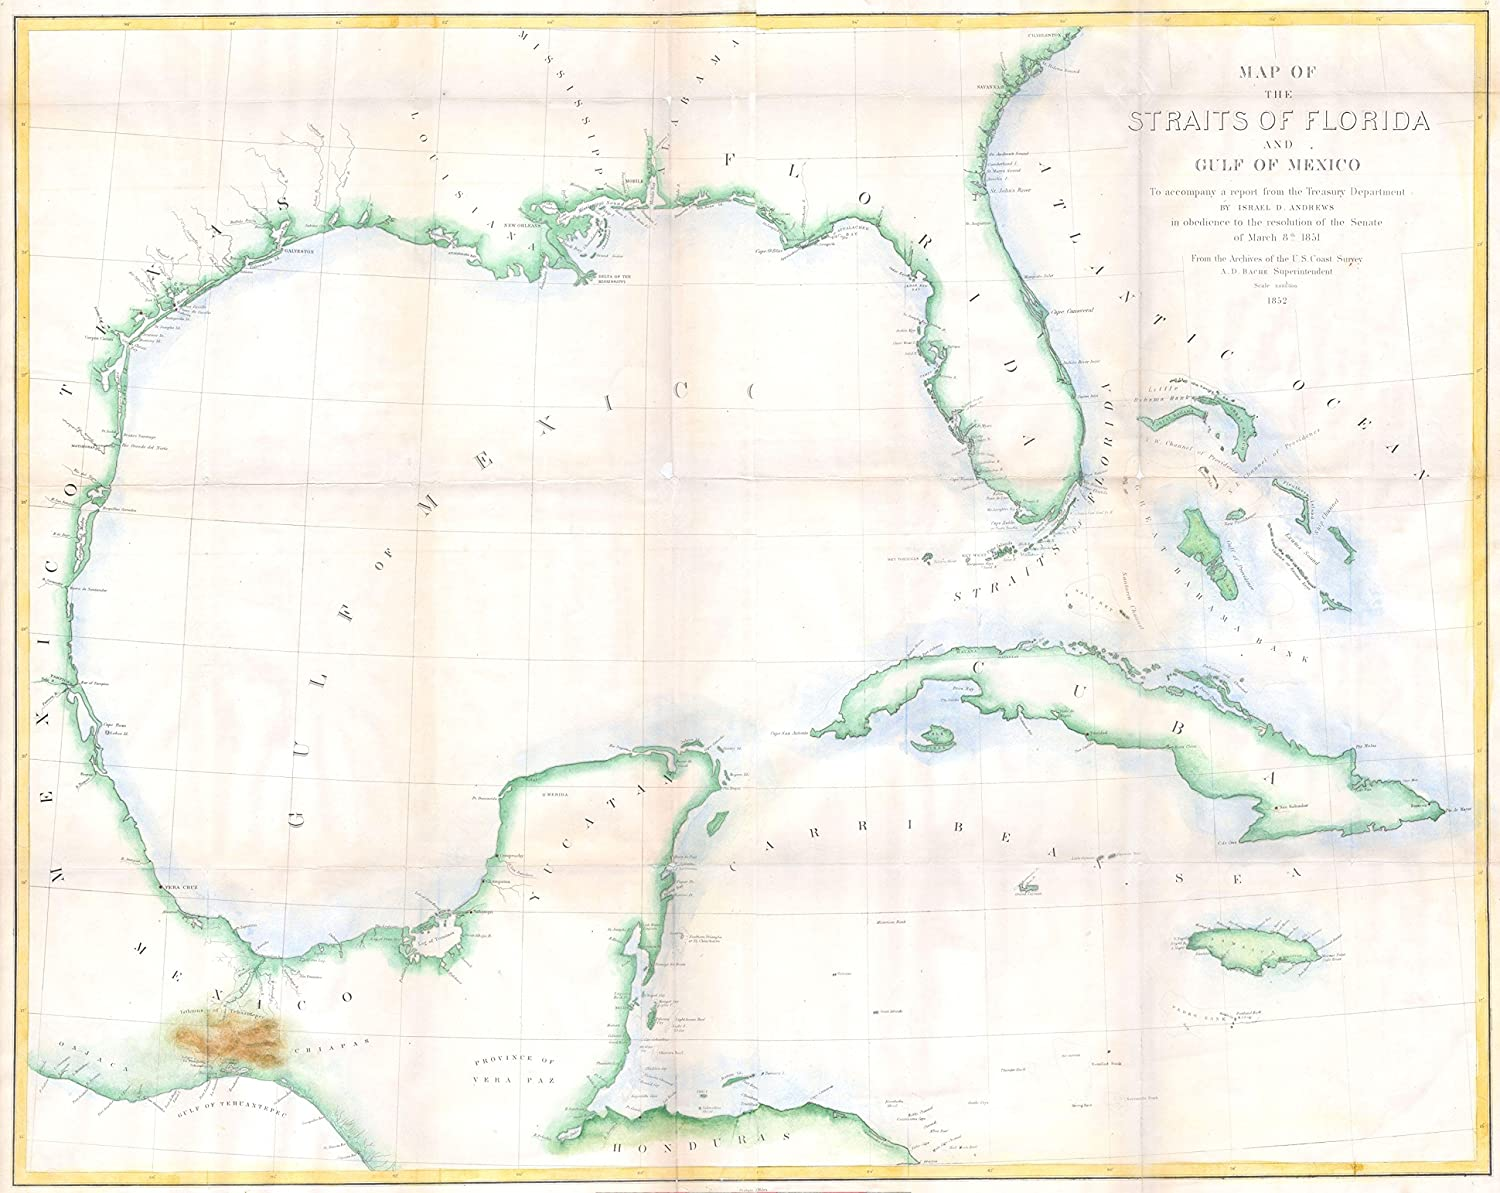 Mexico Florida Map.Amazon Com Andrews Map Of Florida Cuba And The Gulf Of Mexico Map